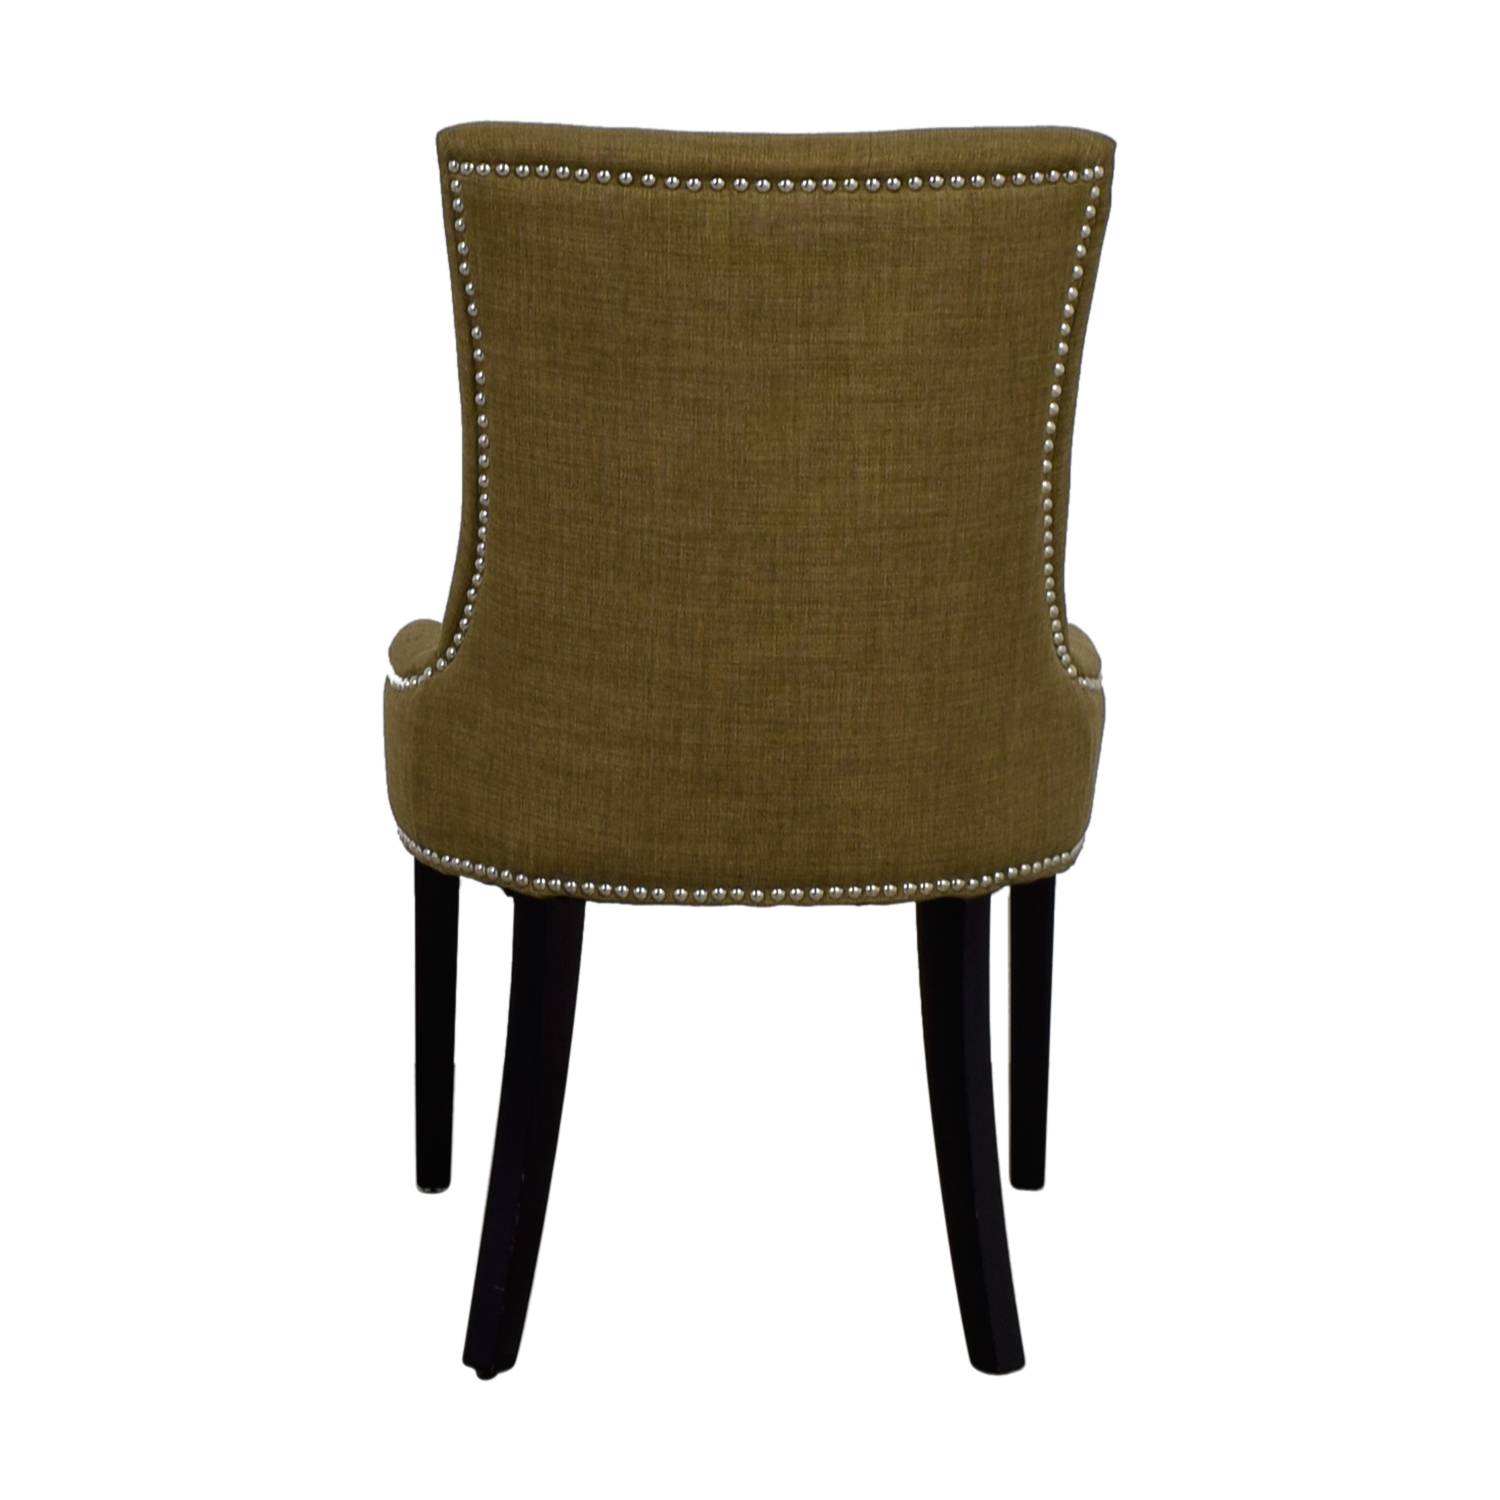 Stupendous 87 Off Abbyson Abbyson Newport Tan Fabric Nailhead Dining Chair Chairs Gmtry Best Dining Table And Chair Ideas Images Gmtryco